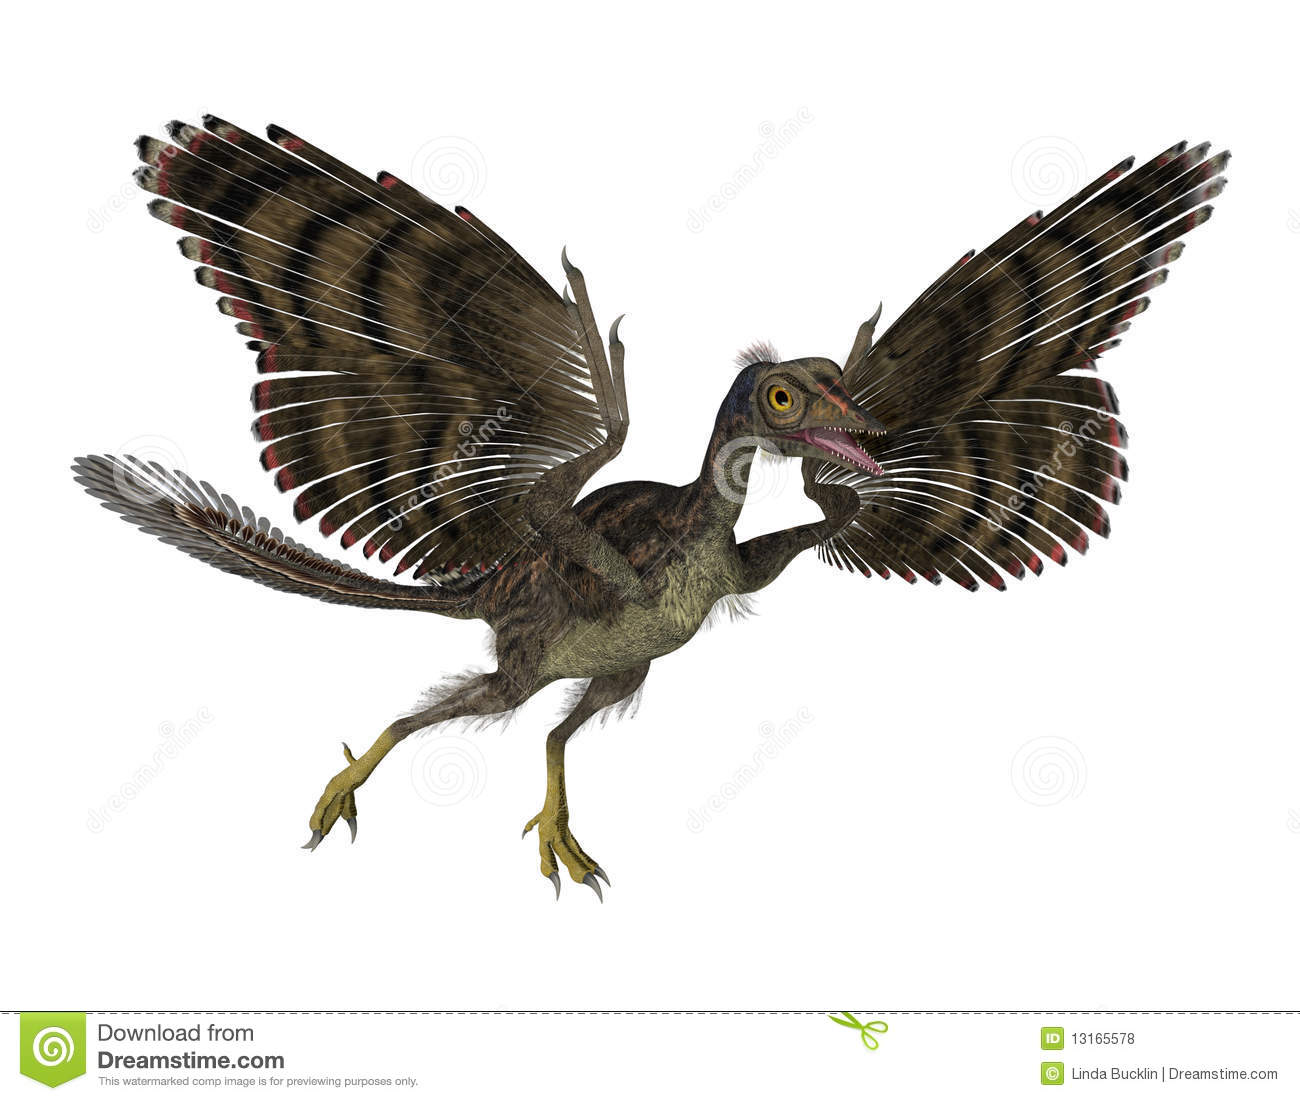 an analysis of archaeopteryx fossils during the jurassic period One of the earliest birds, archaeopteryx lived about 150 million years ago during the jurassic period, spanning the evolutionary gap between modern birds and feathered dinosaurs.